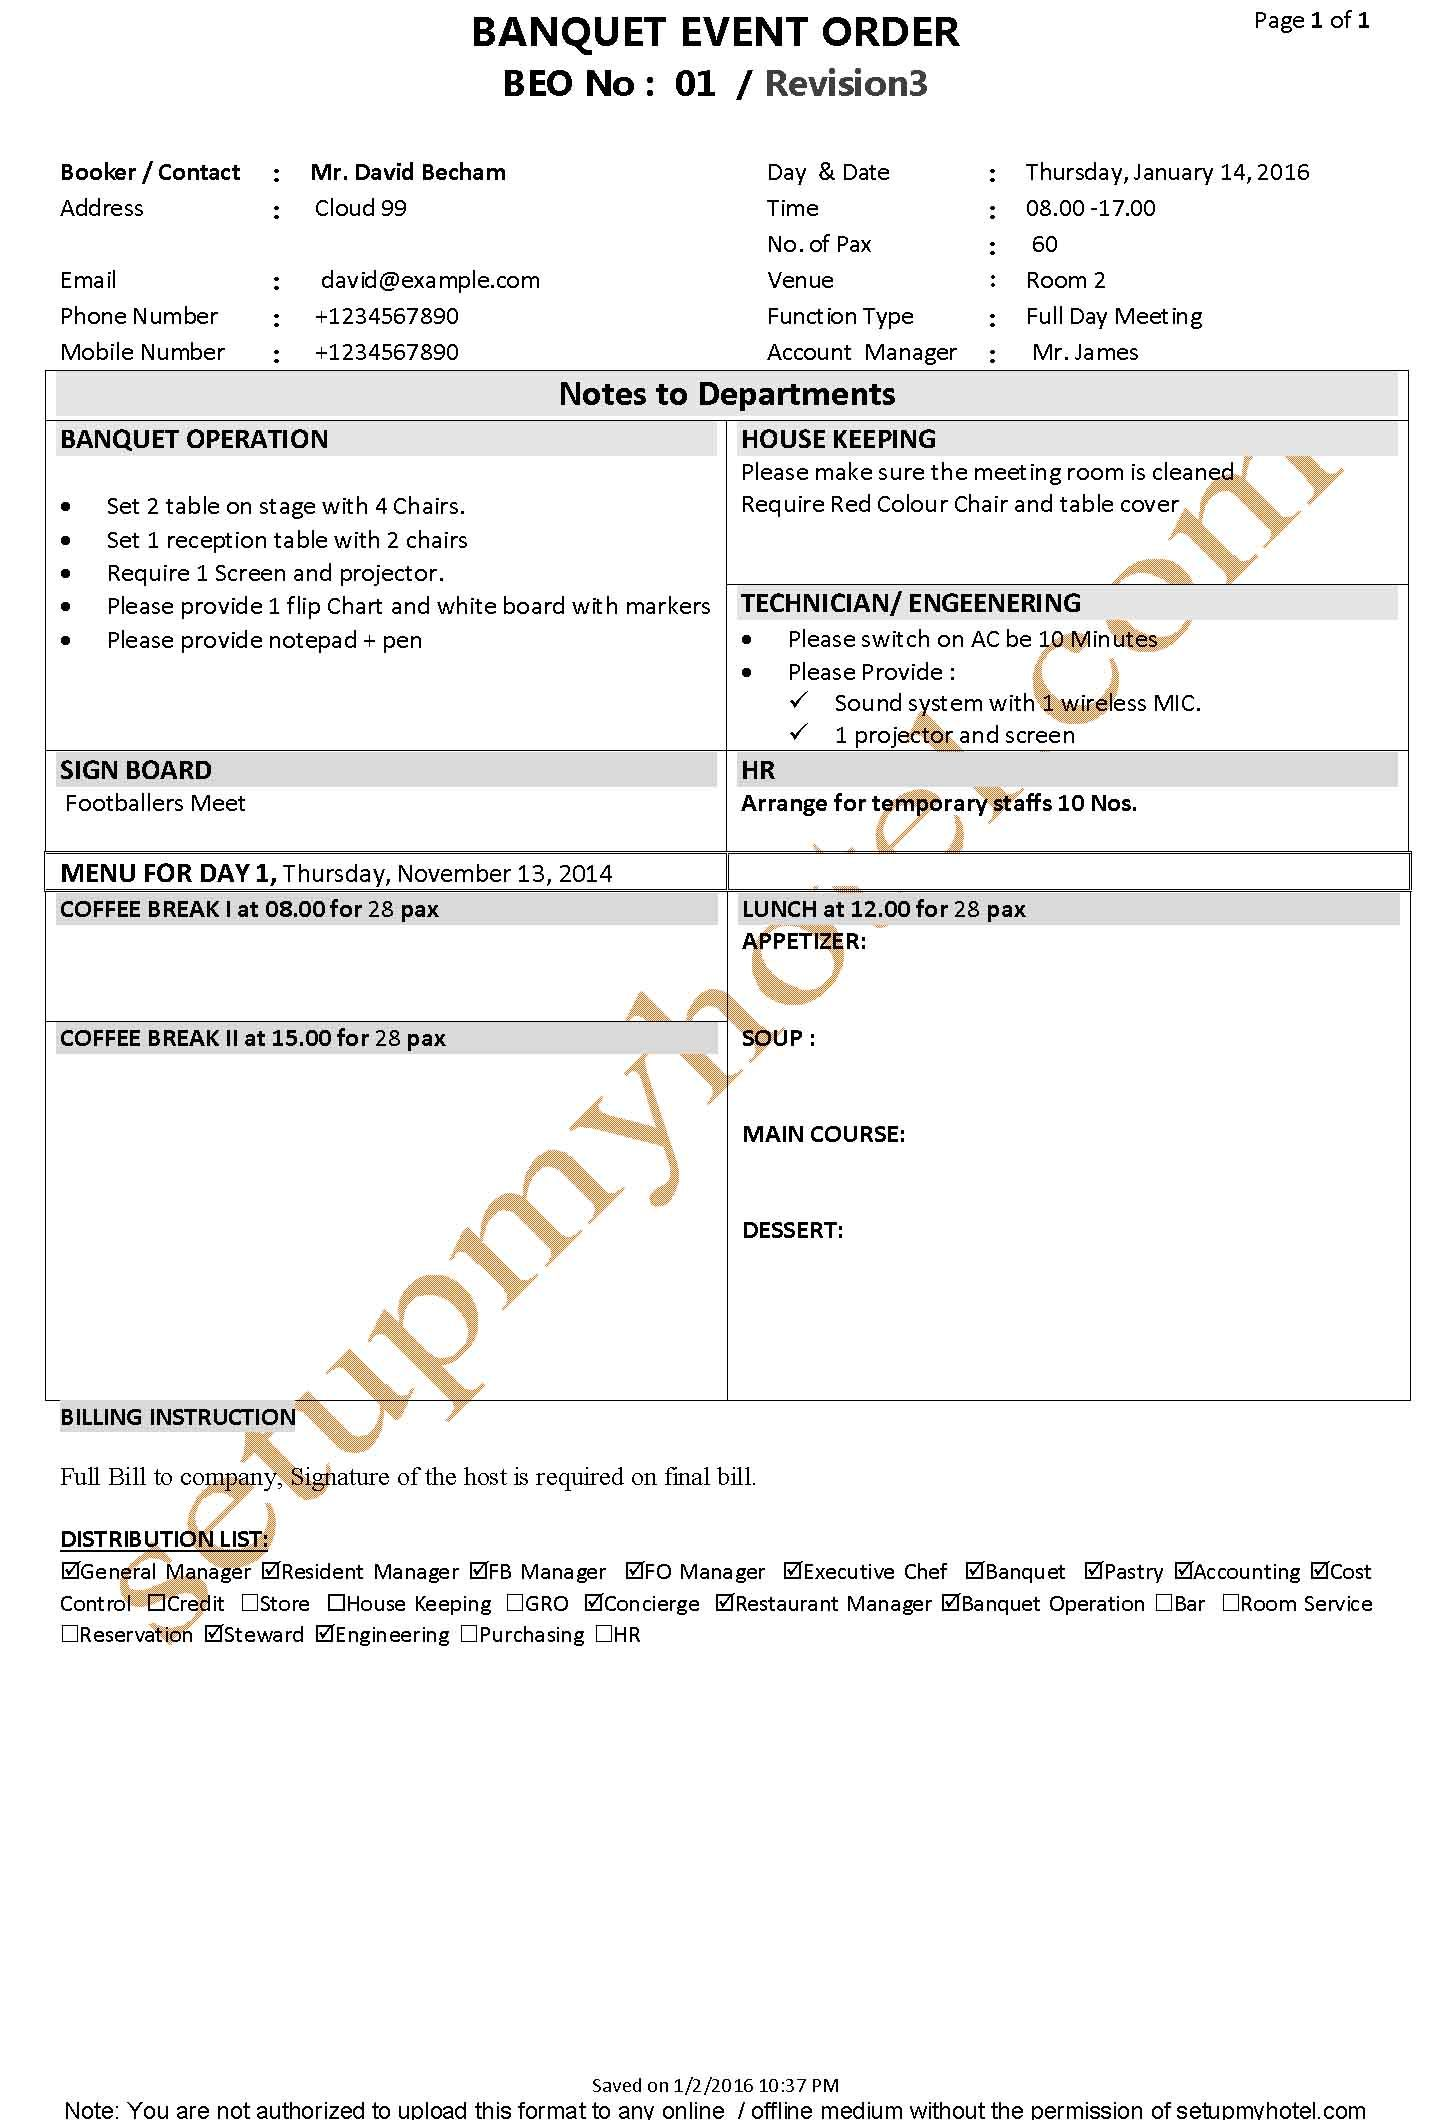 Banquet Function Plan Event Order Form Fp Beo Sample